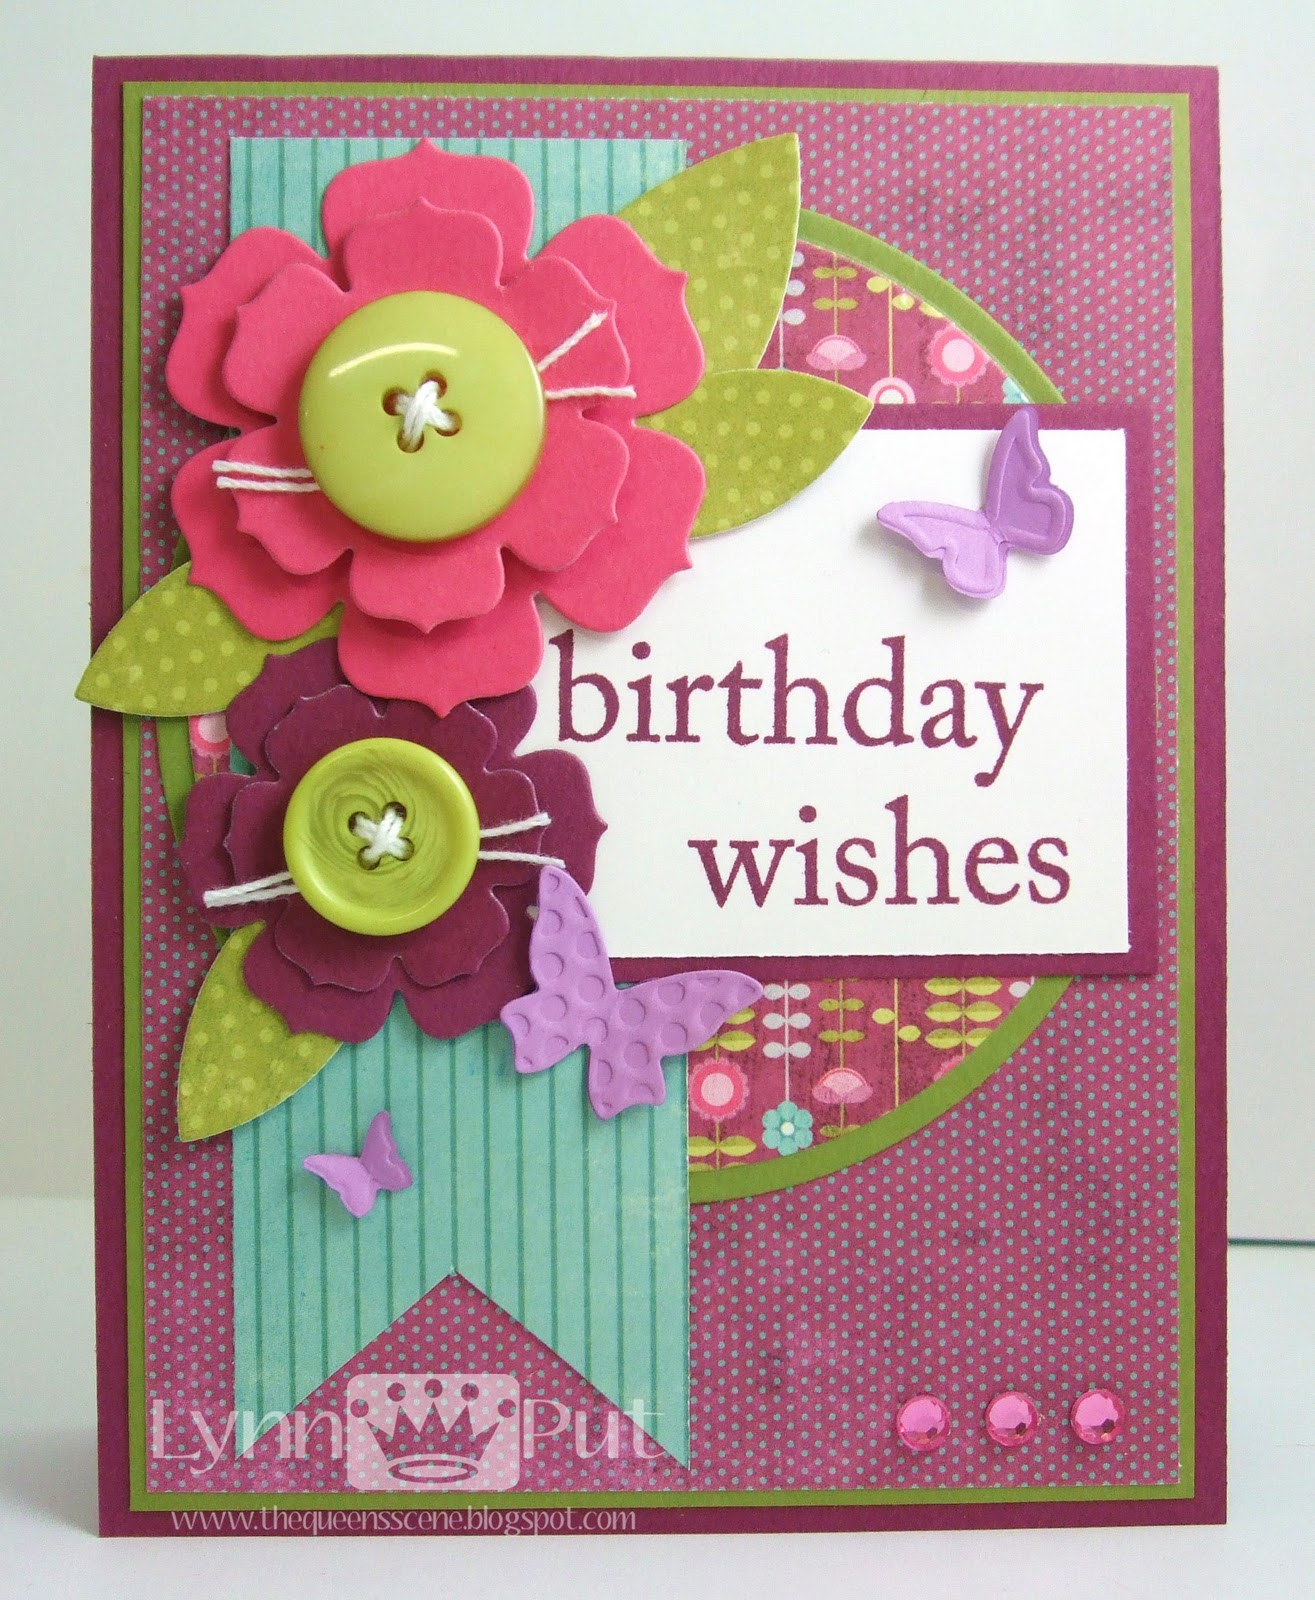 Birthday Wishes For A Friend Funny Polar Bear Card Pictures